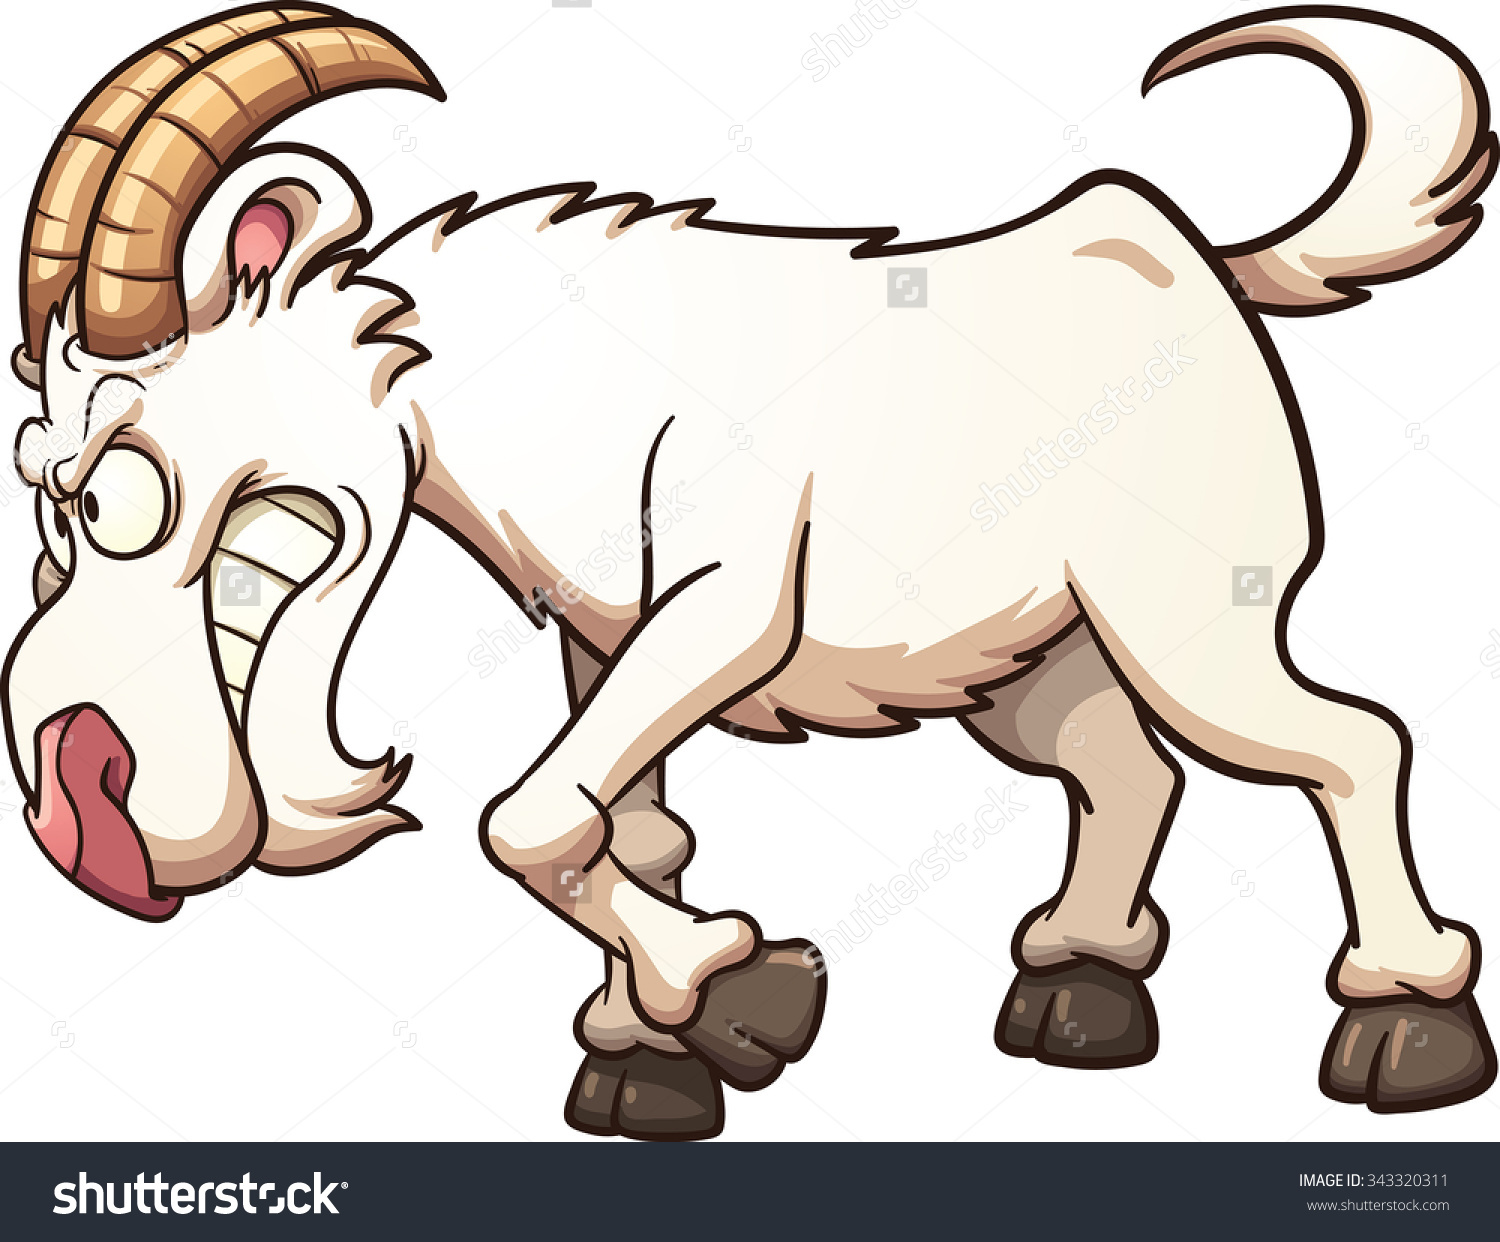 1500x1242 Billy Goat Clipart Graphic